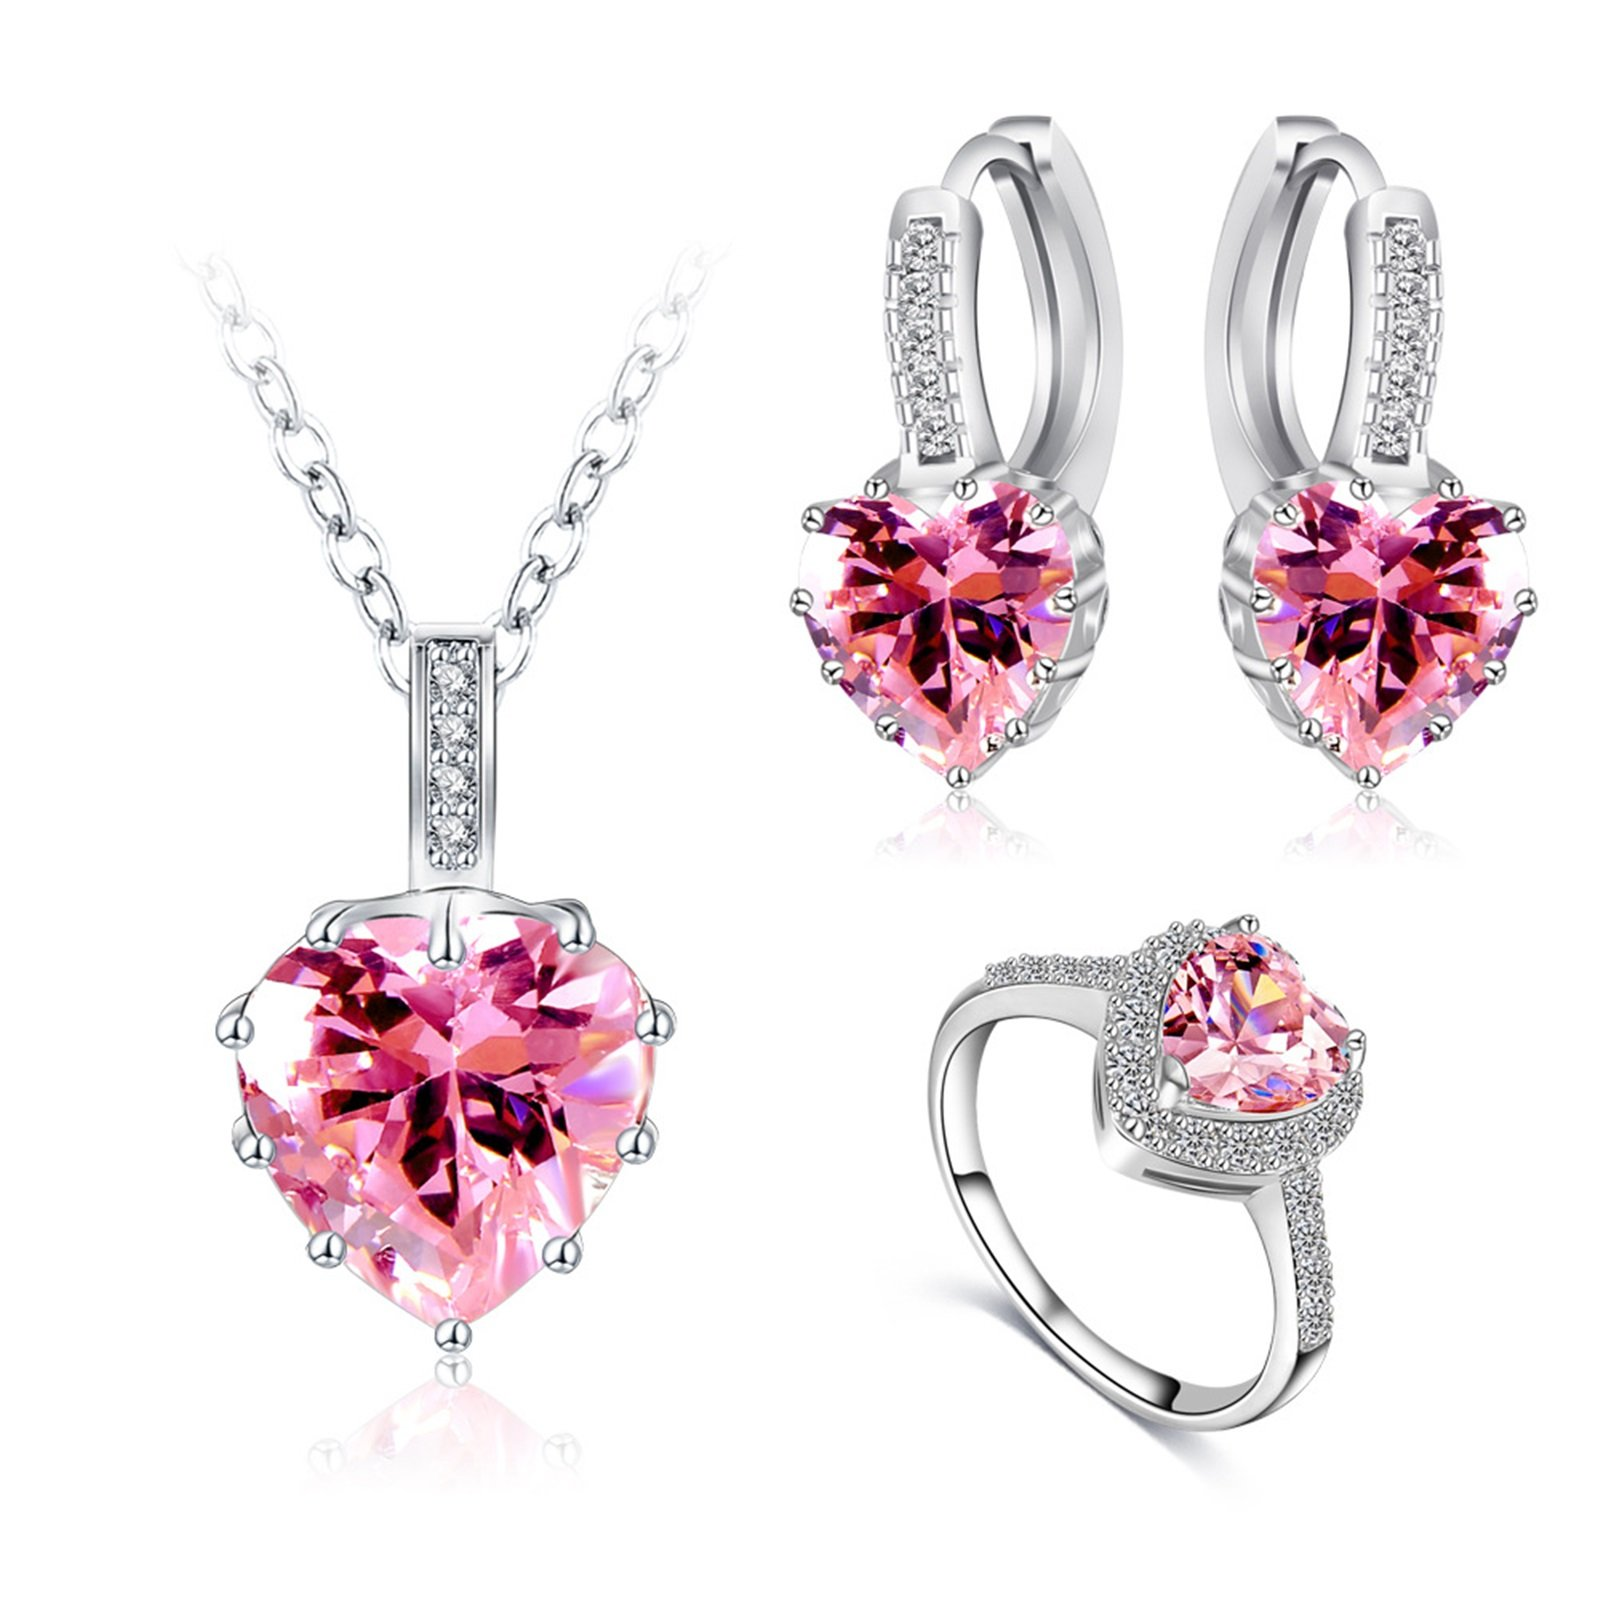 AnaZoz Jewelry Set Pink Zirconia Heart Pendant Necklace Hoop Earring and Wedding Ring Set for Women Wedding Jewelry with Gift Box Size 6